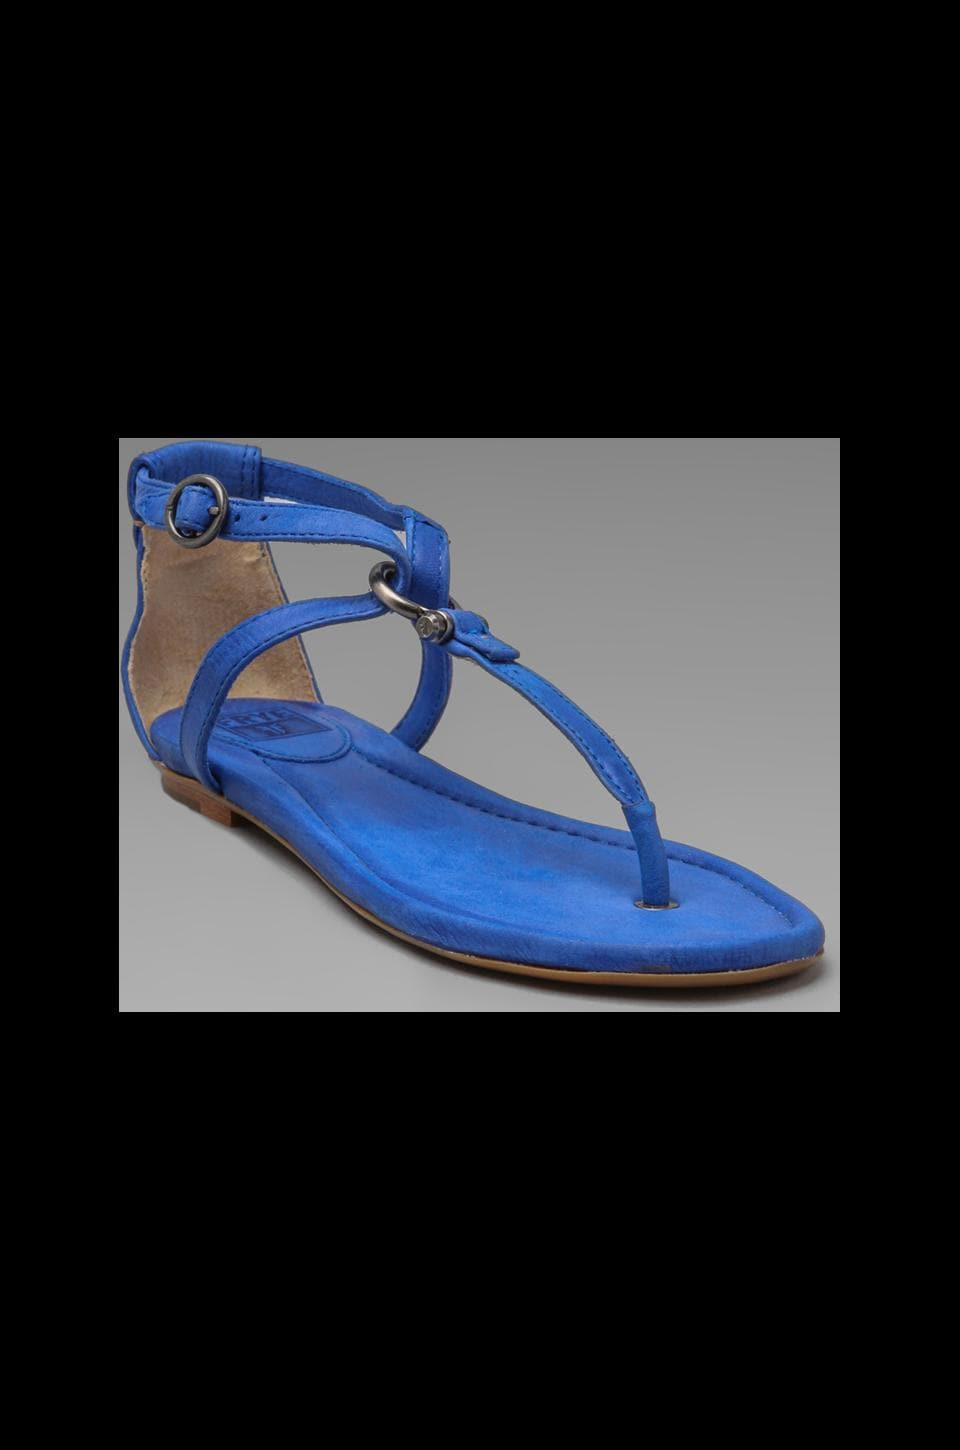 Frye Madison Strappy Sandal in Blue